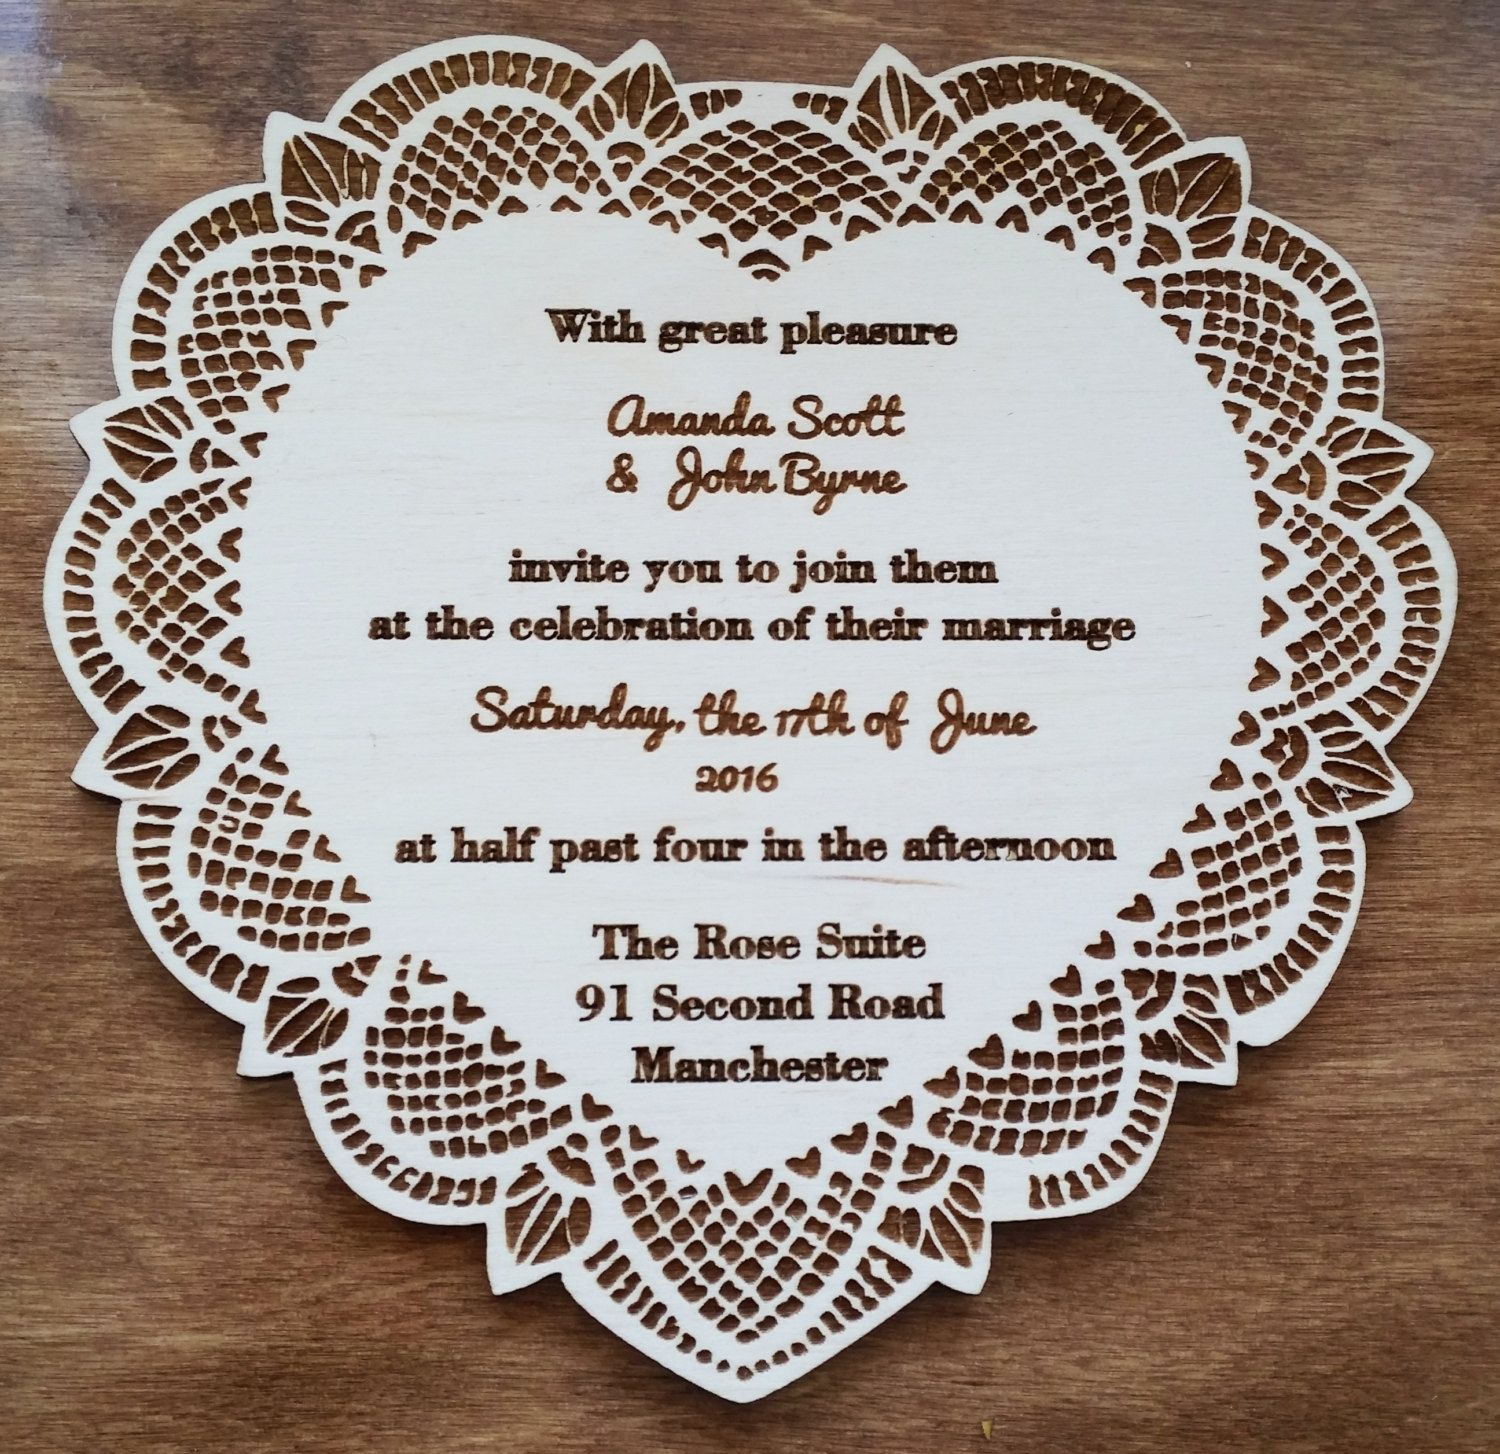 10x Laser cut wooden wedding invitations, save the date cards ...